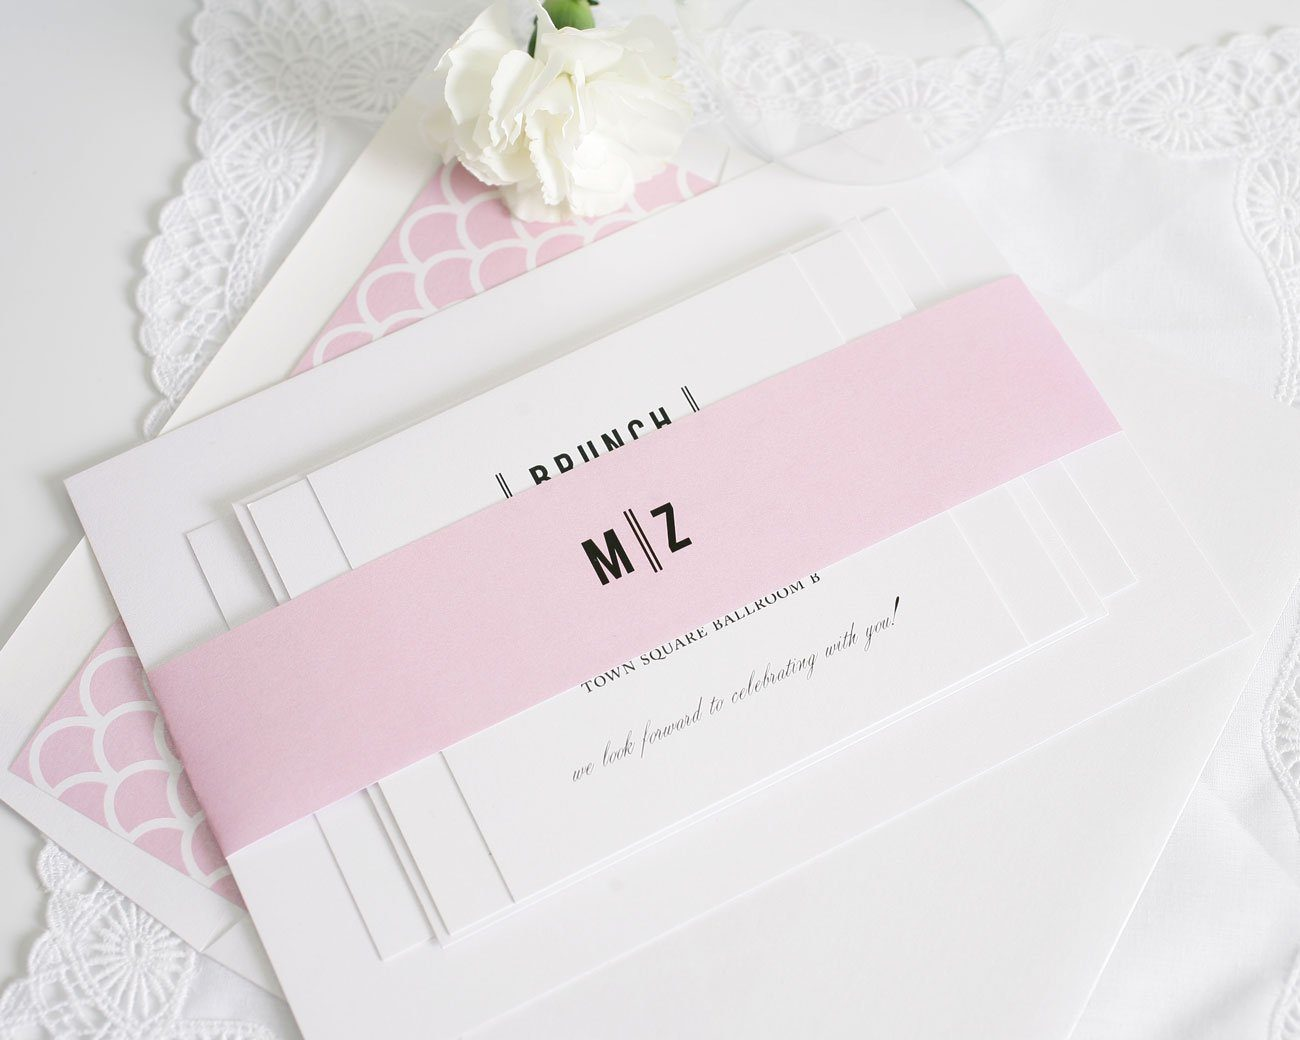 Urban wedding invitations with pink accents